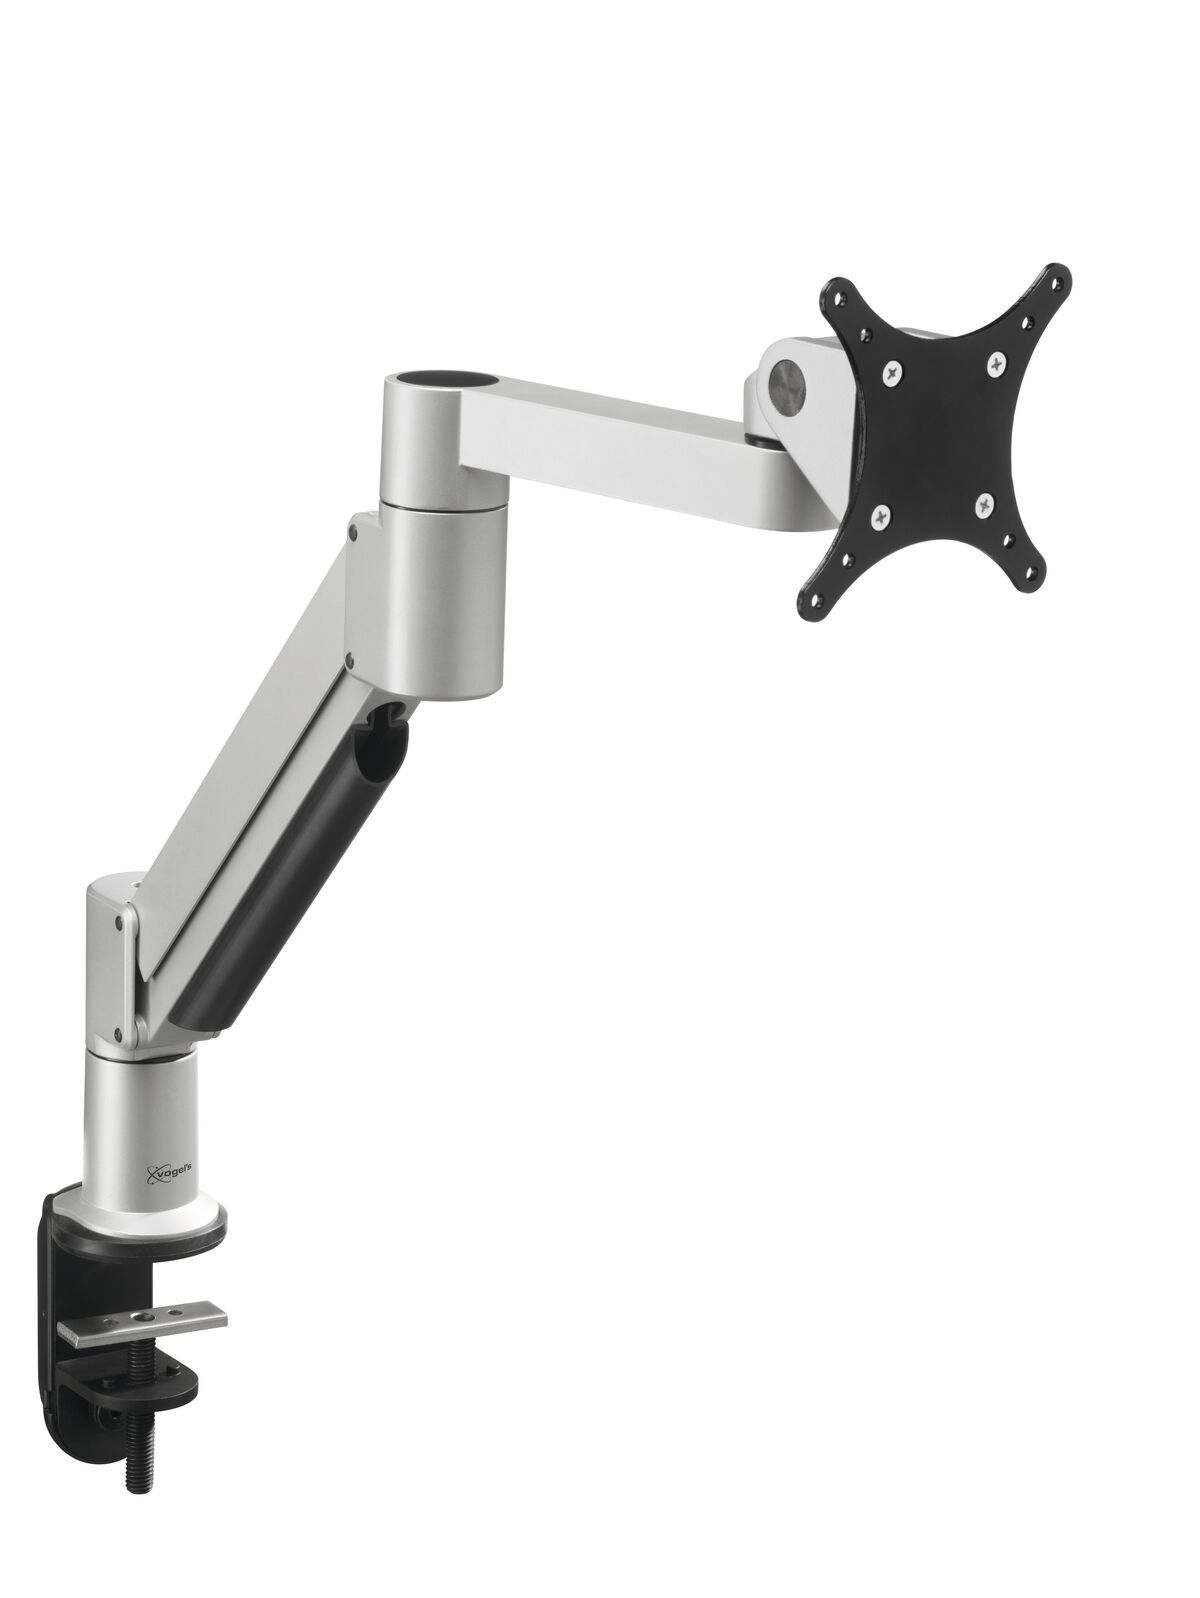 Vogel's PFD 8541 Monitor mount dynamic silver - For monitors up to 5.7 kg - Ideally suited for Gaming and (Home) Office - Product